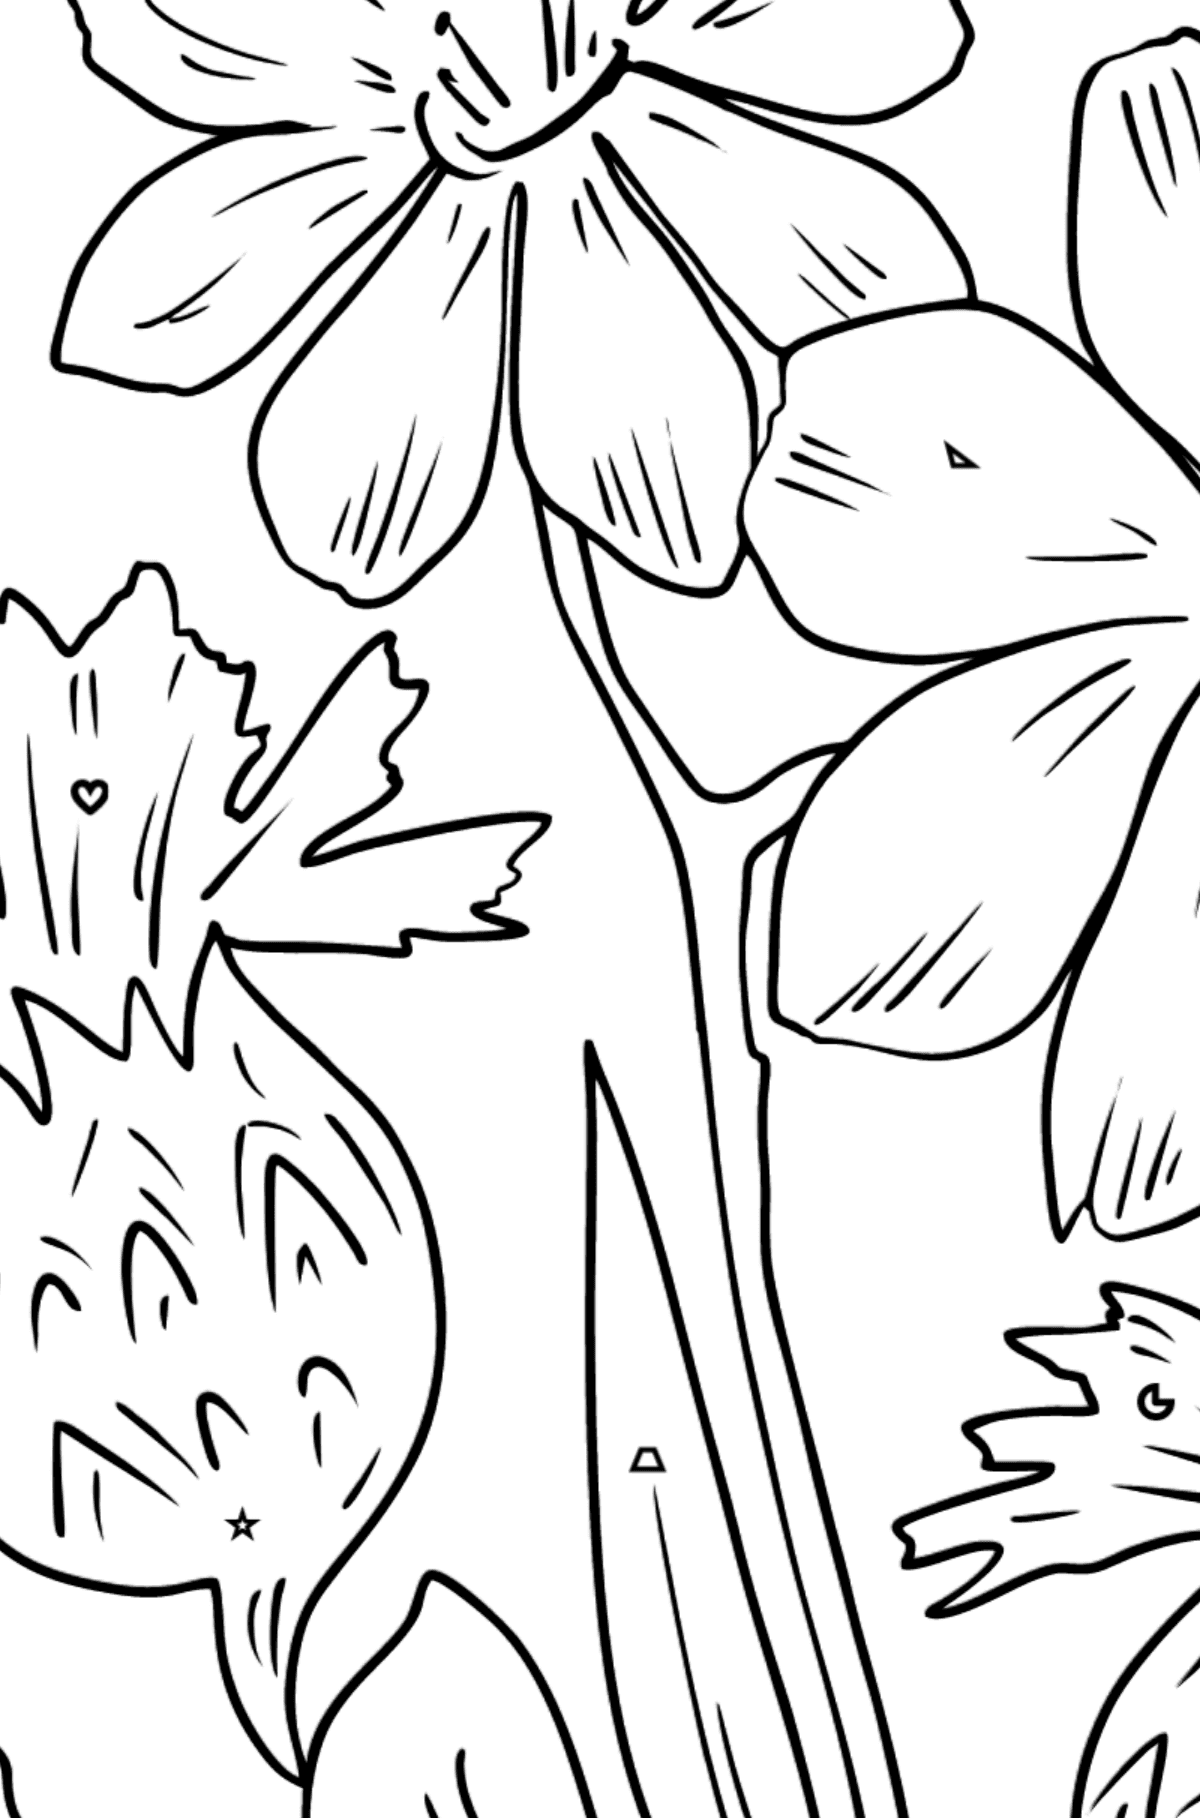 Flower Coloring Page - flowers in the meadow - Coloring by Geometric Shapes for Kids